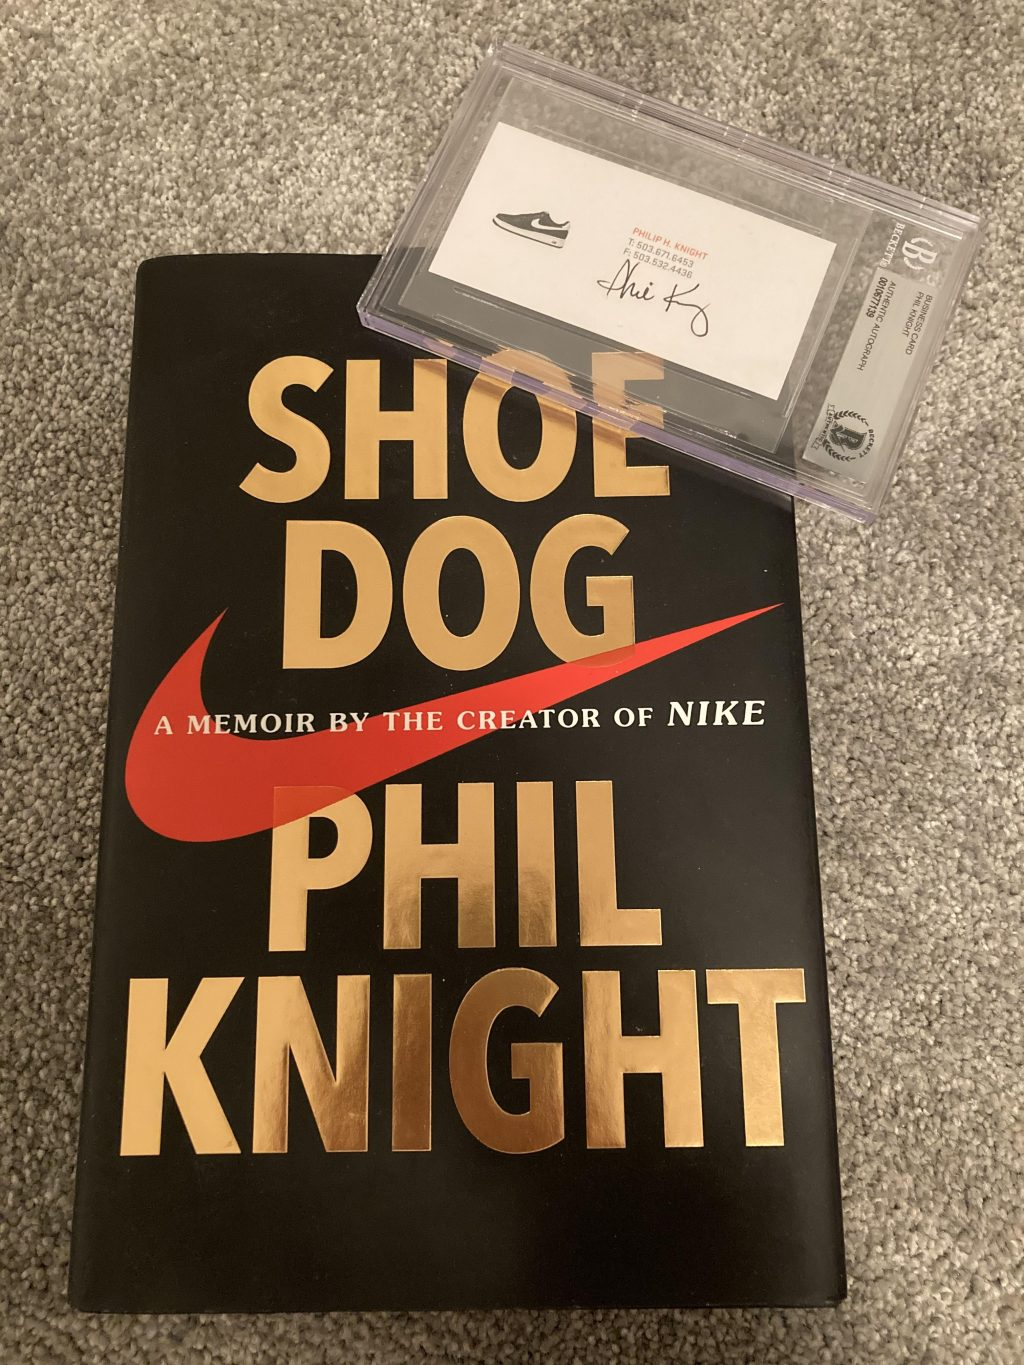 """Crandall first read the book """"Shoe Dog"""" by Nike founder Phil Knight when visiting Oregon during his first year of high school in 2016. Crandall said he bought a signed business card from Knight online as an inspirational piece that motivates him to work hard and think creatively."""